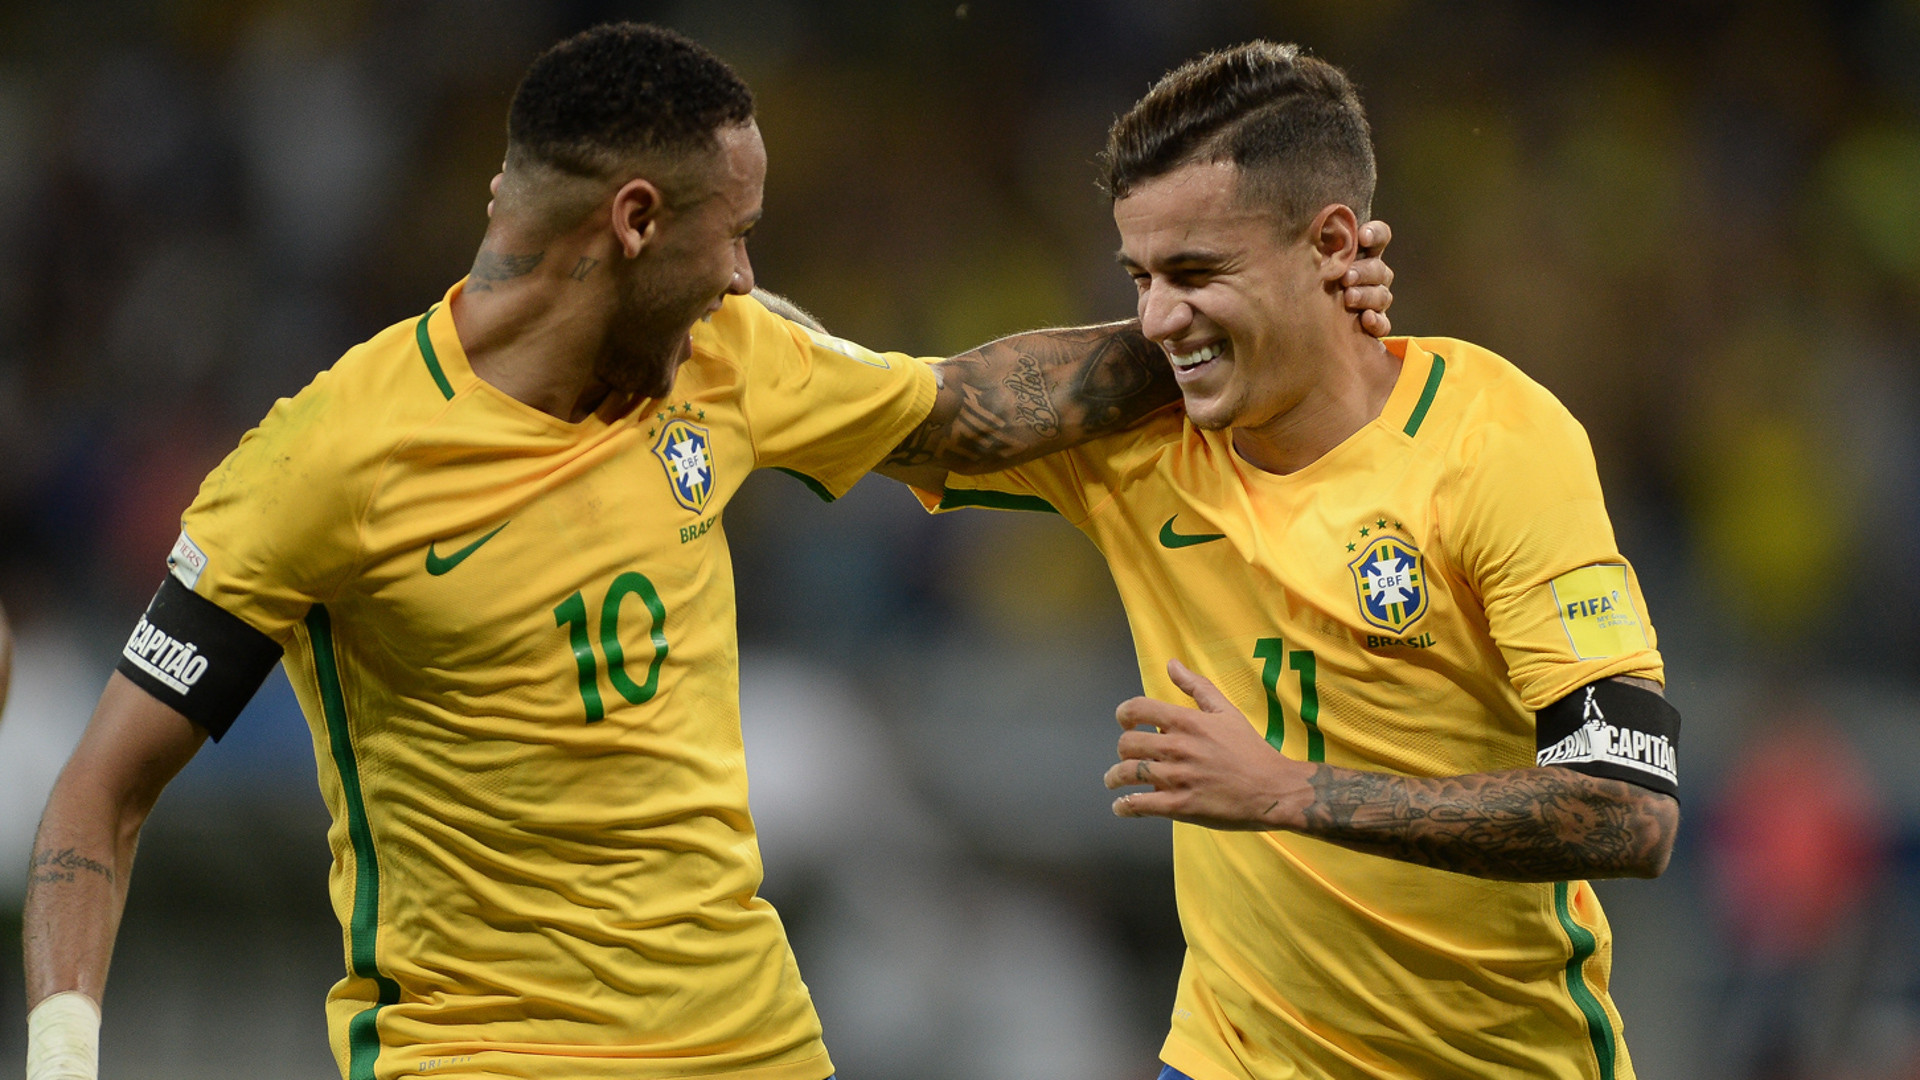 1920x1080 Reunited: Old friends Coutinho and Neymar ready for World Cup bid